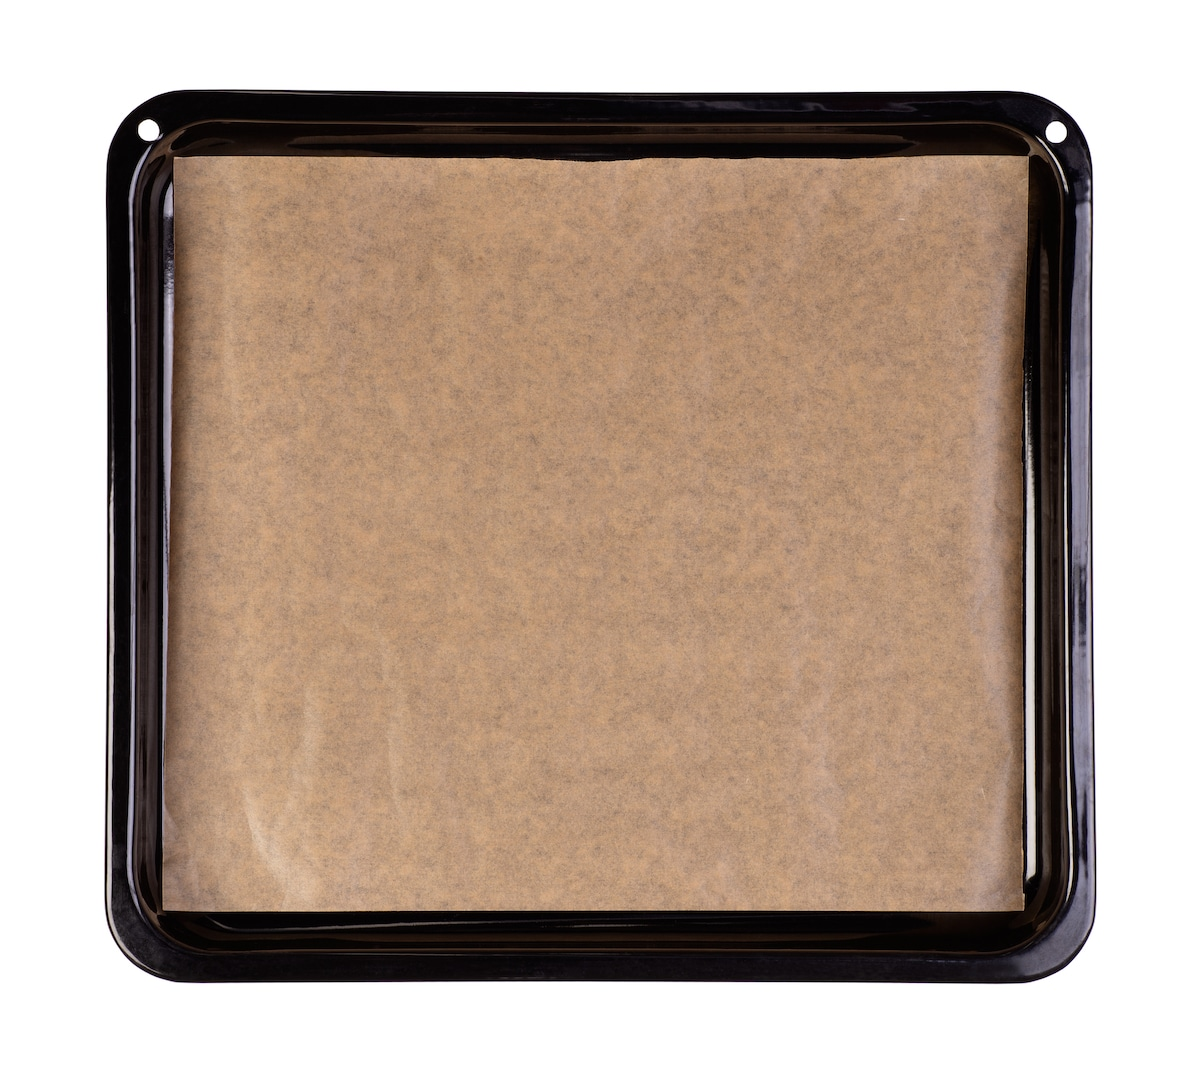 A pan with baking paper